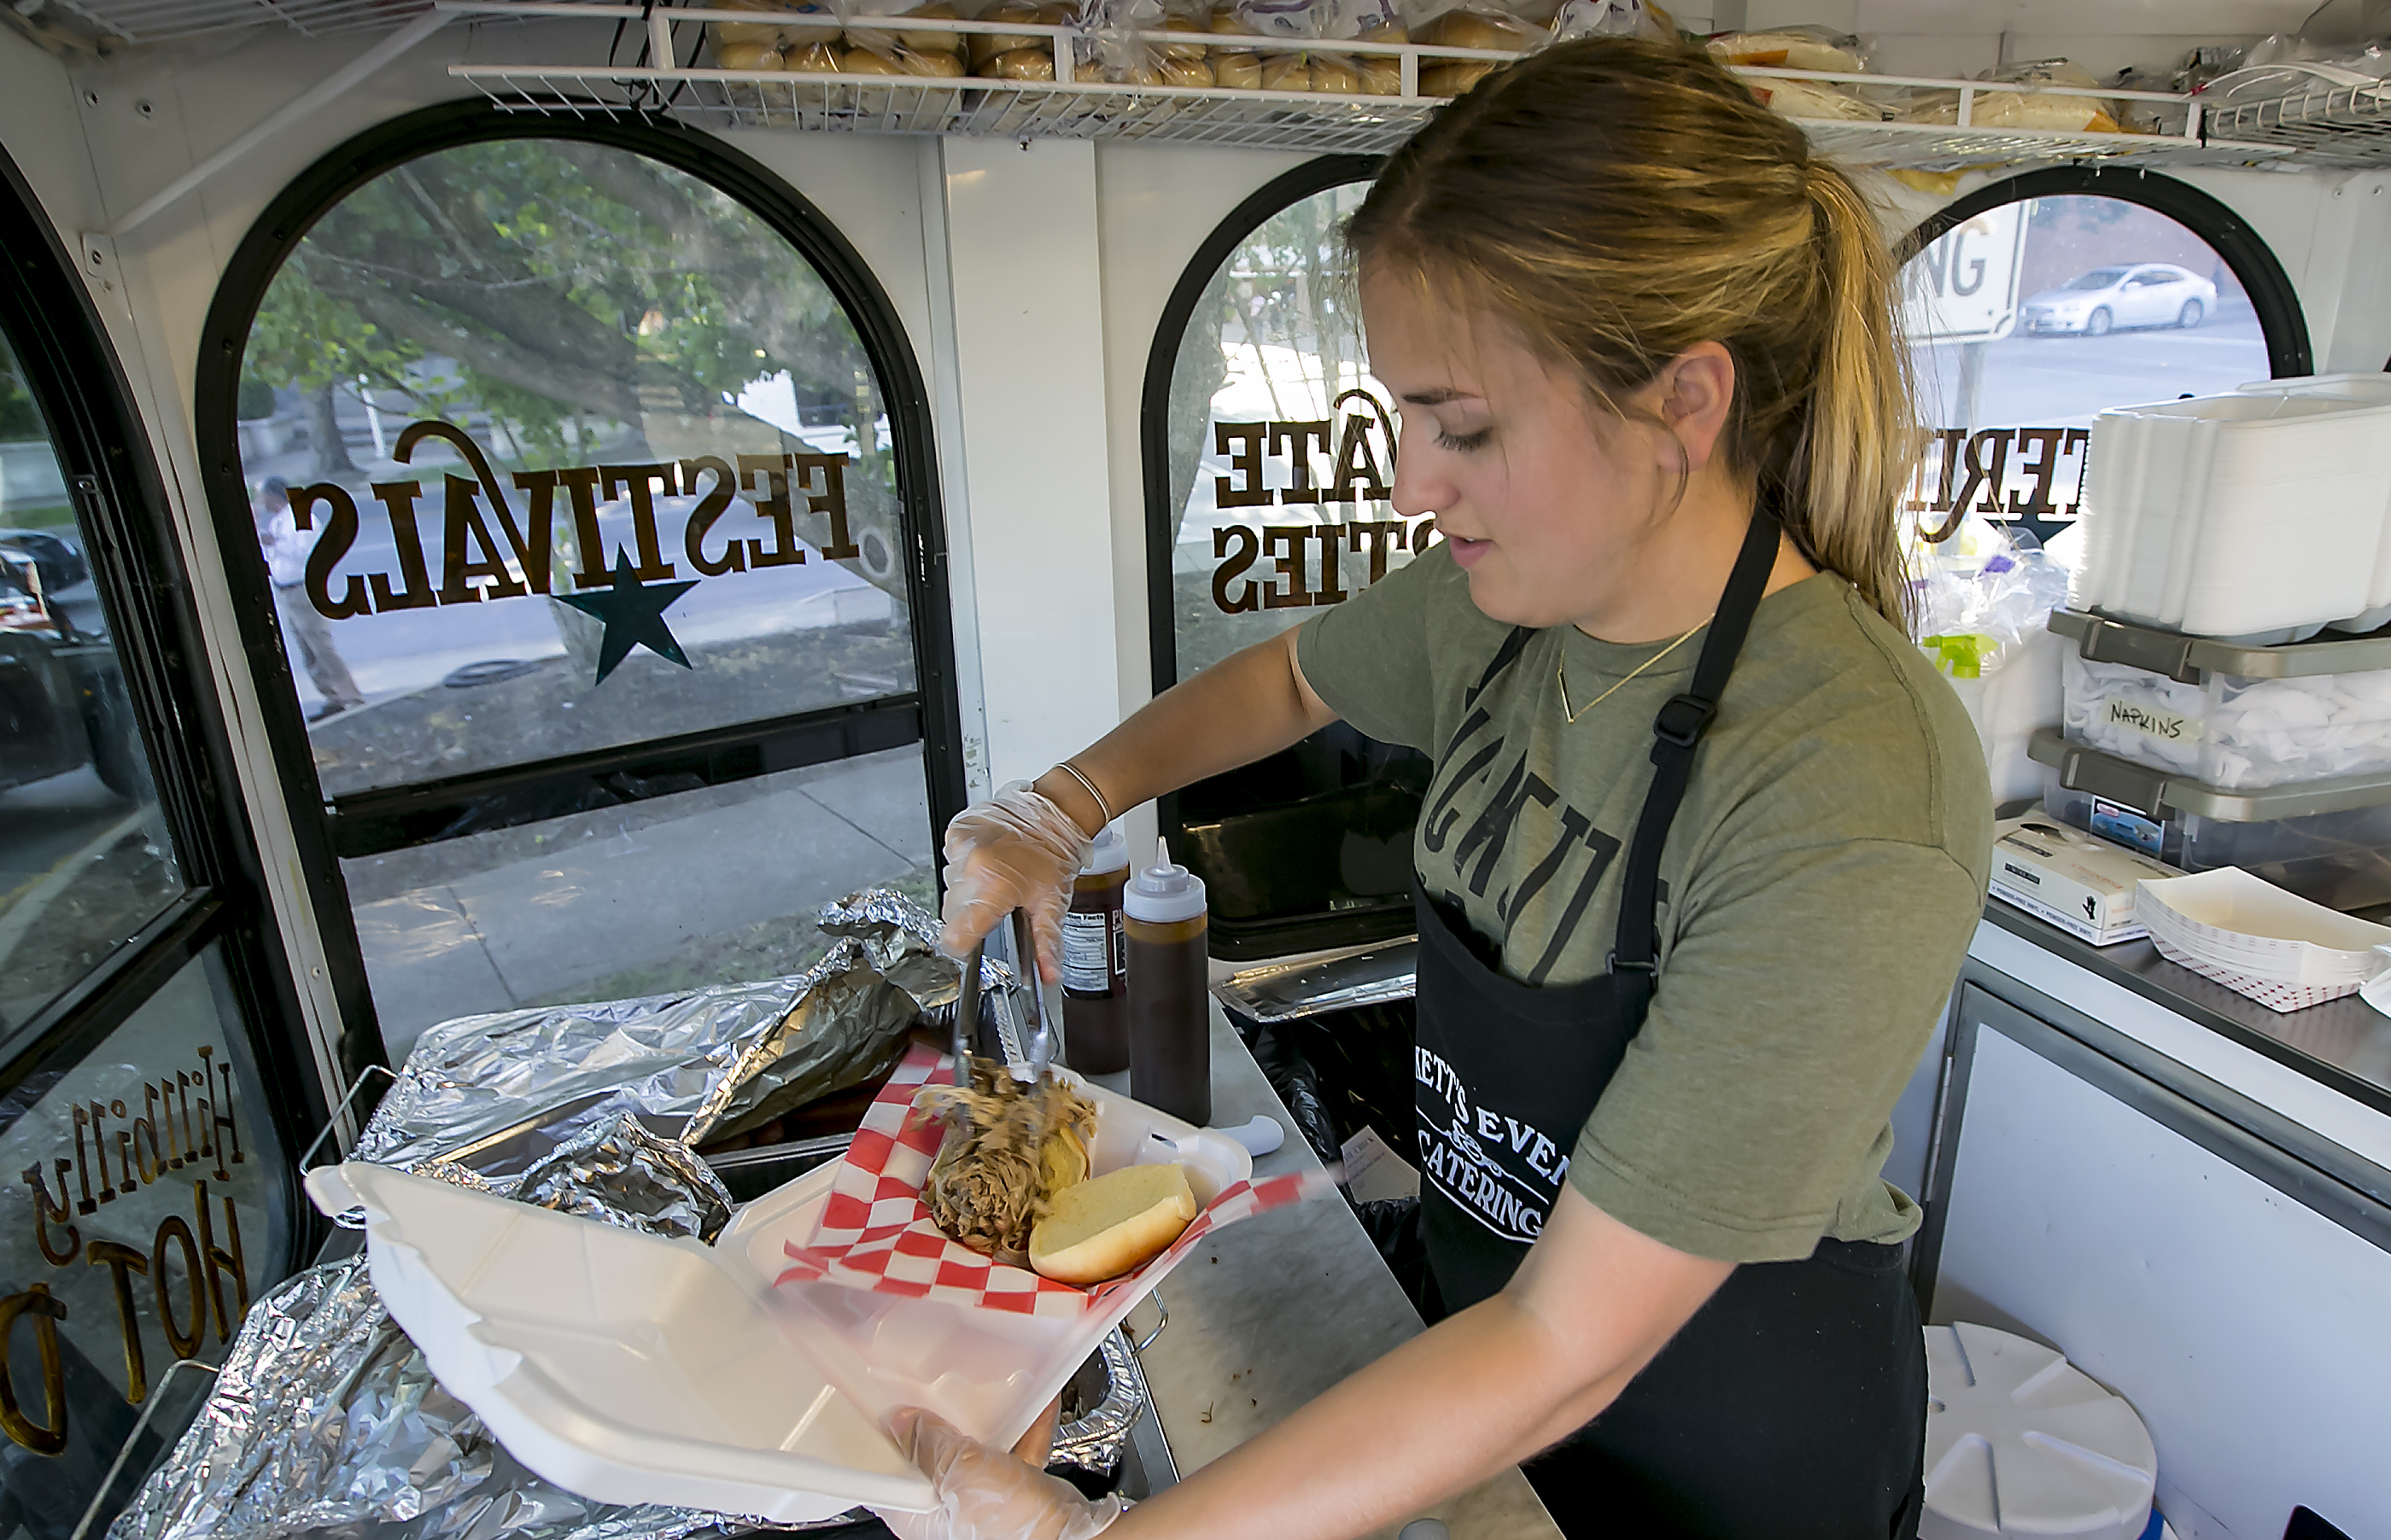 Food Trucks in Murfreesboro - Change in Regulations Soon